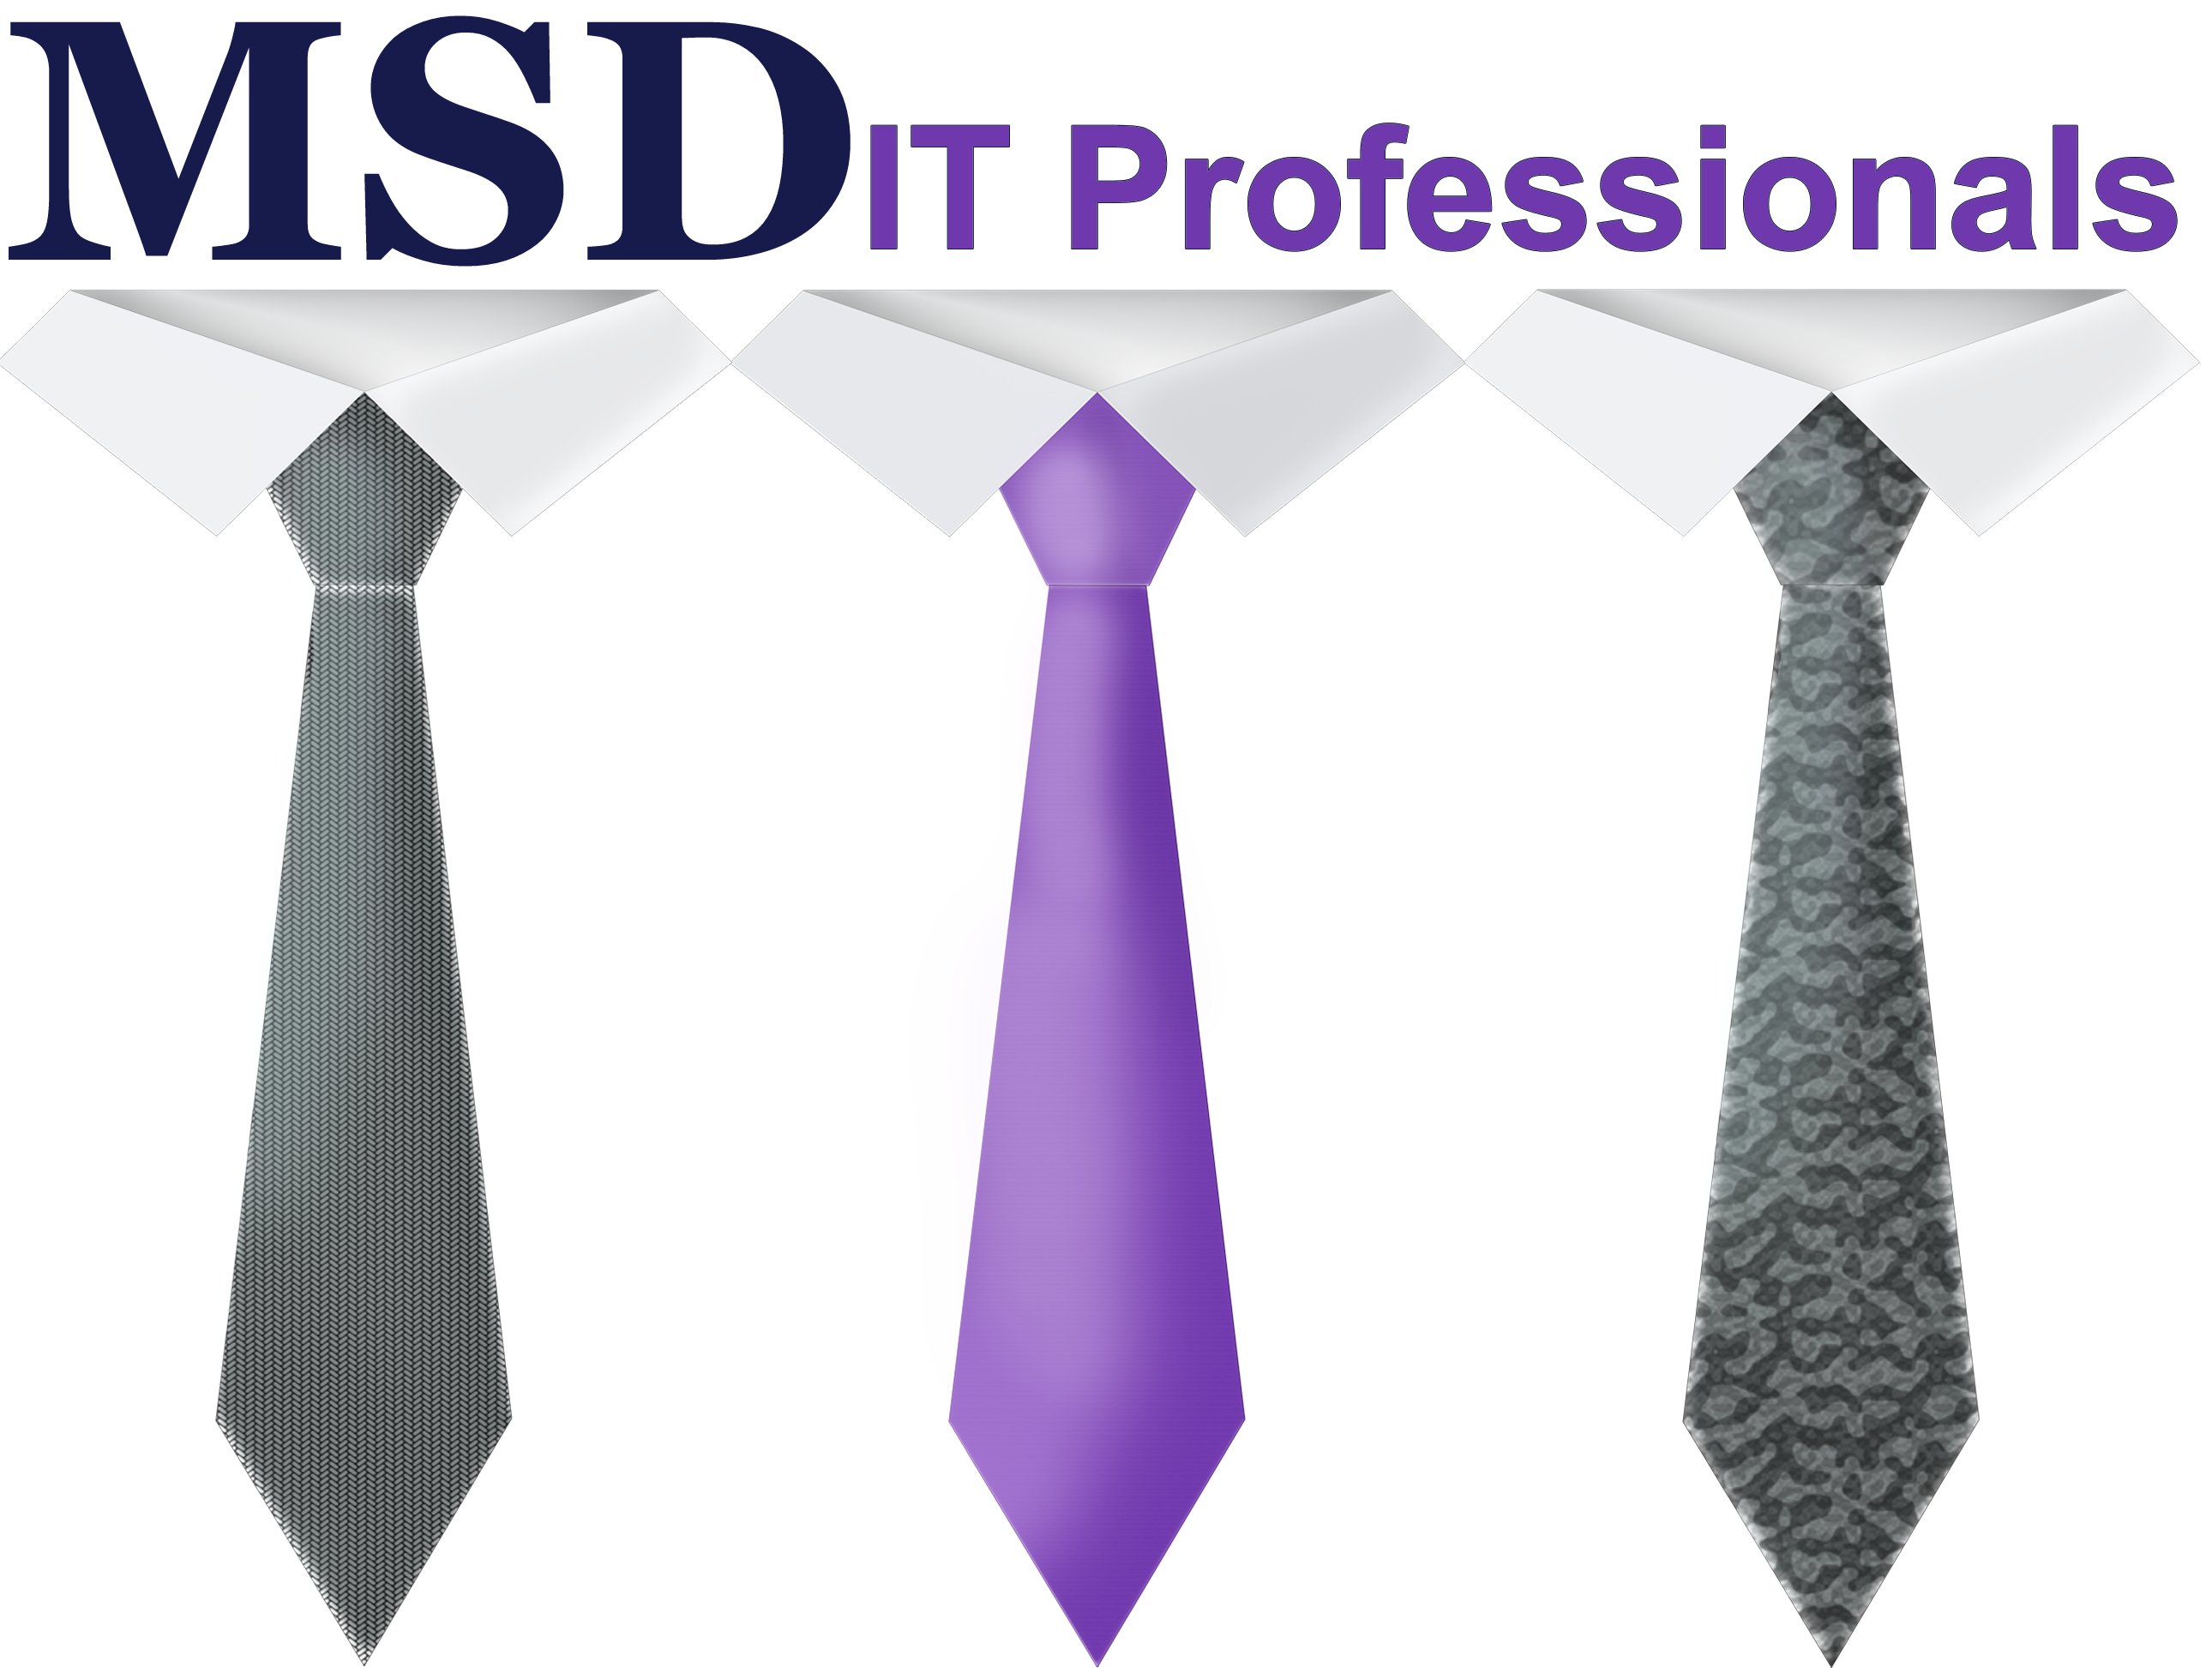 MSD IT Professionals